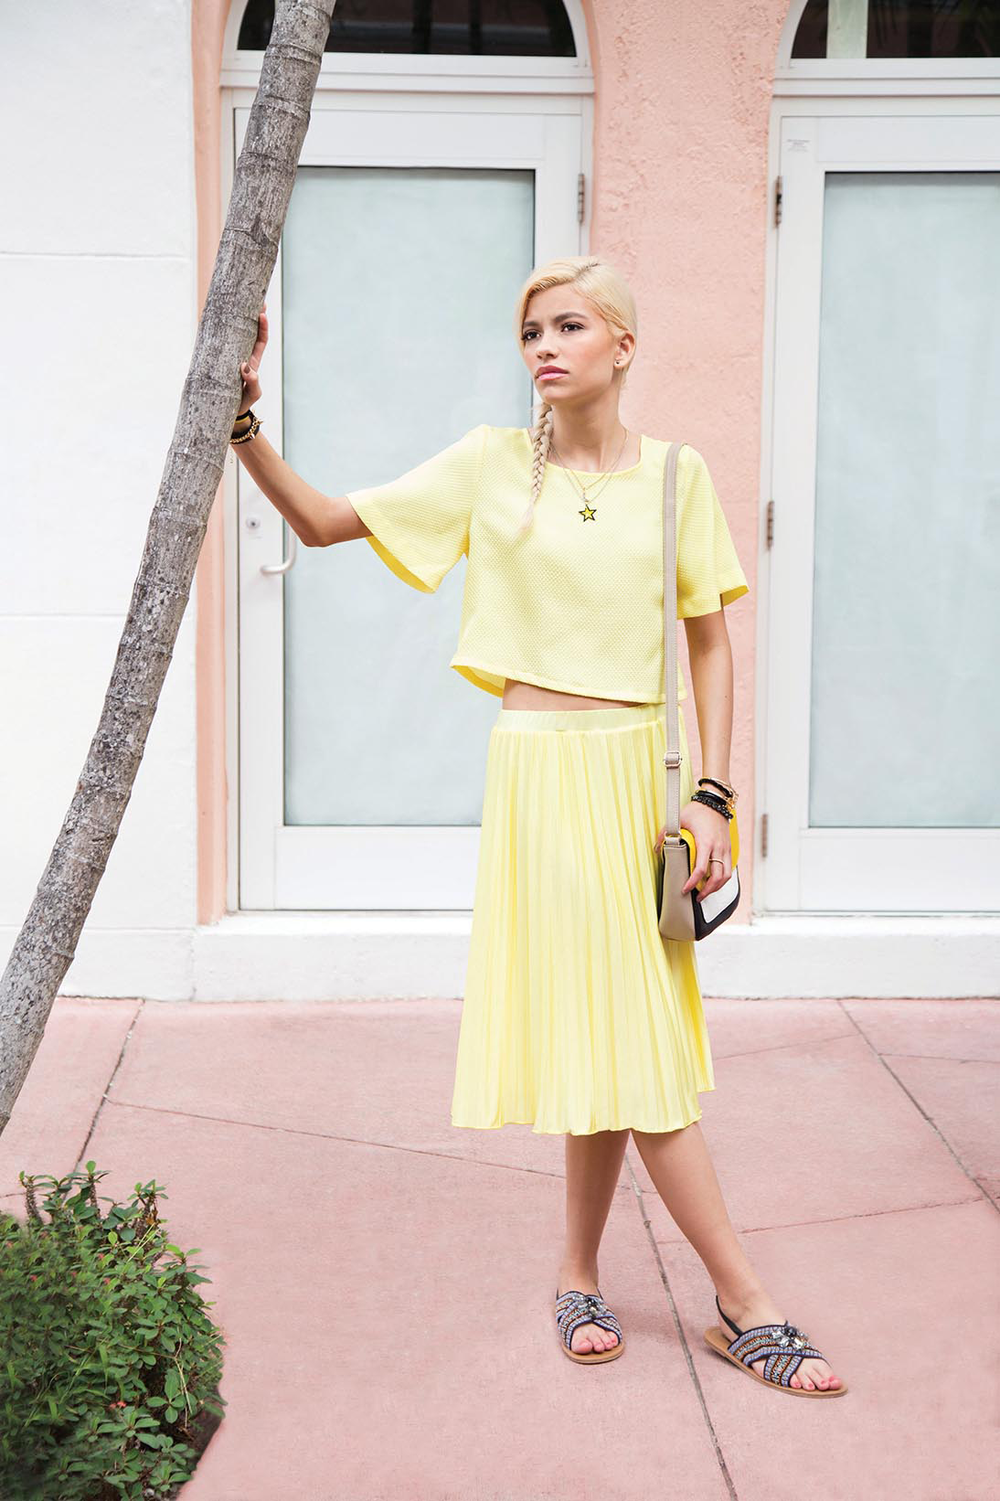 10281137c05_R0_yellow_skirt_1852_LR.png